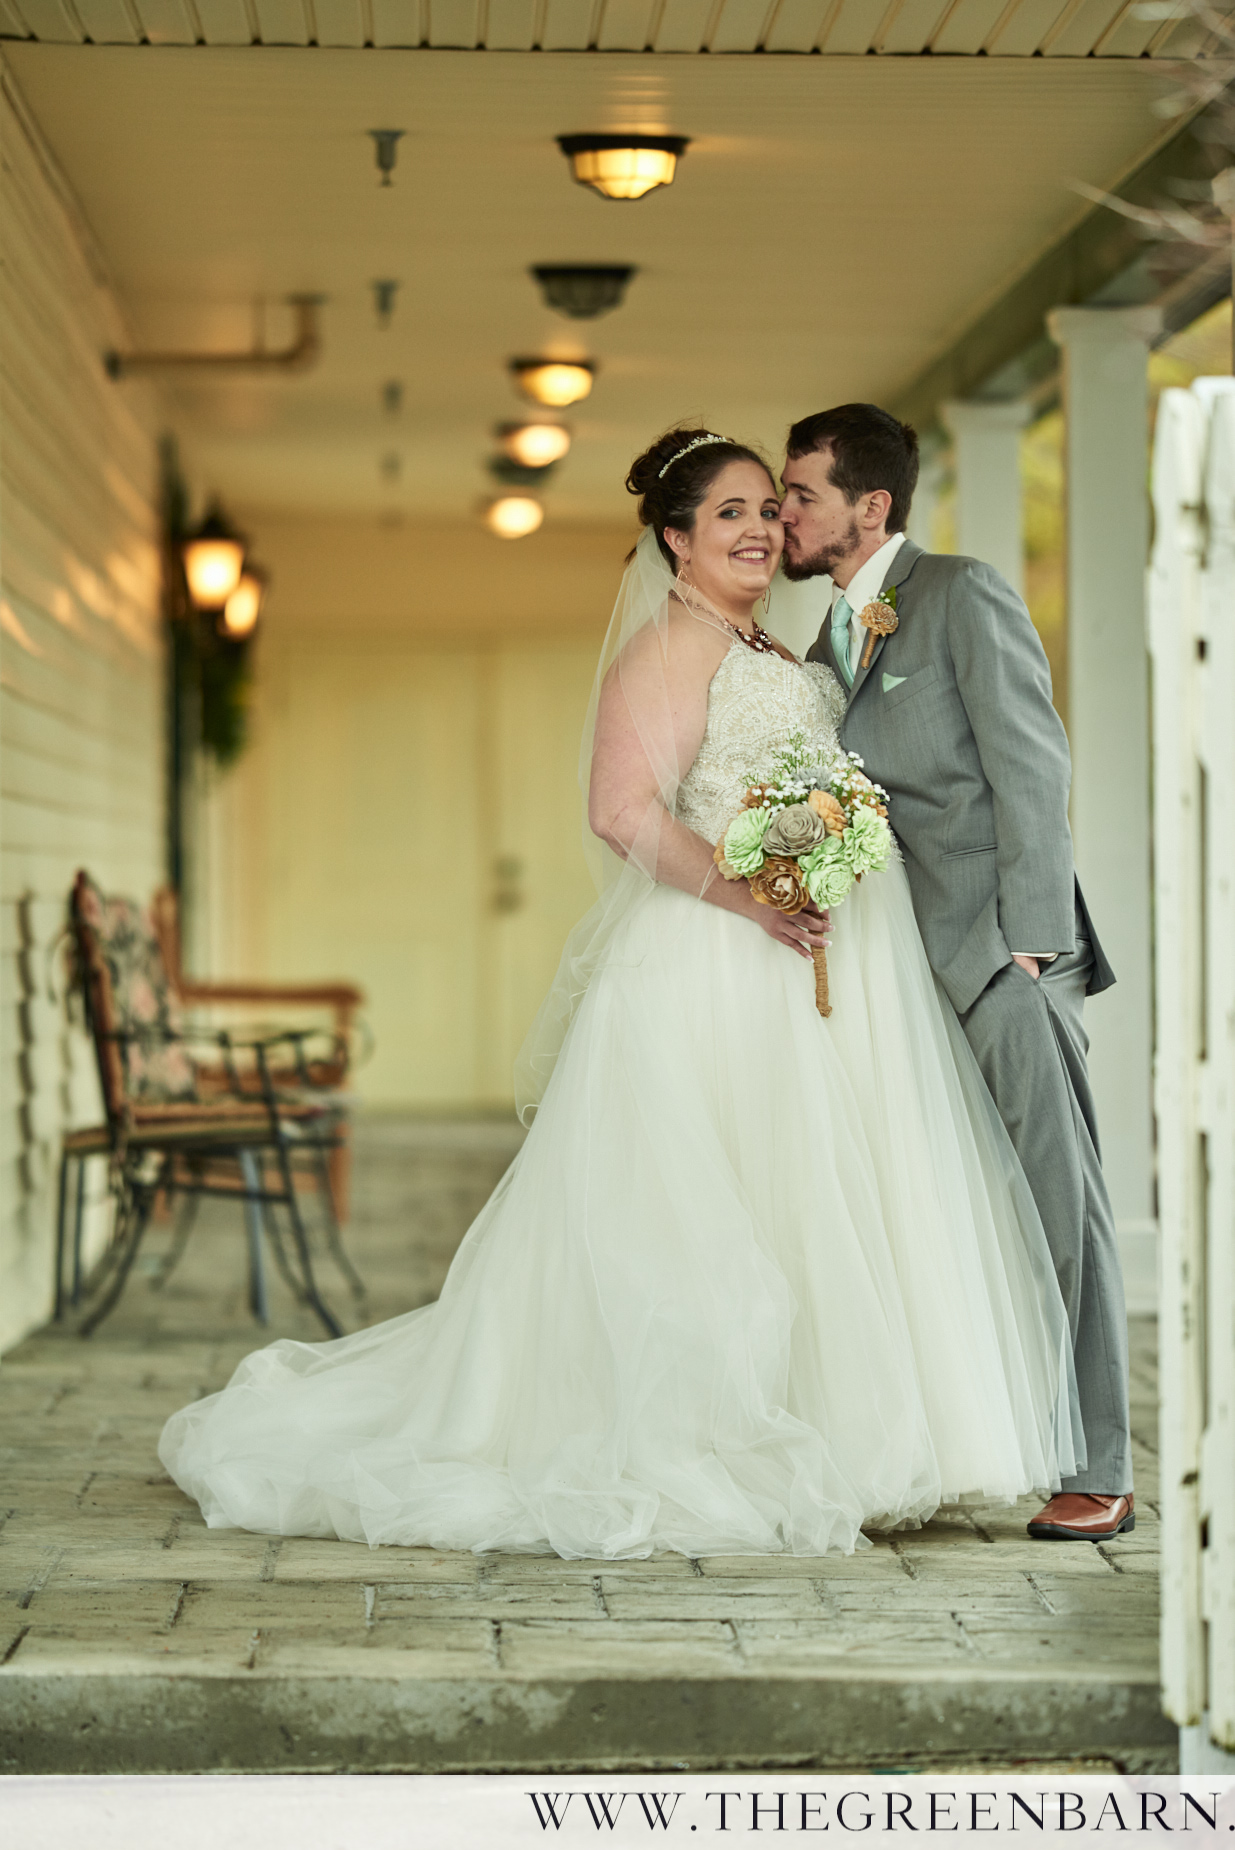 Bride and Groom Portrait at a Spring Vermont Wedding near Burlington Photo by Cate Bligh